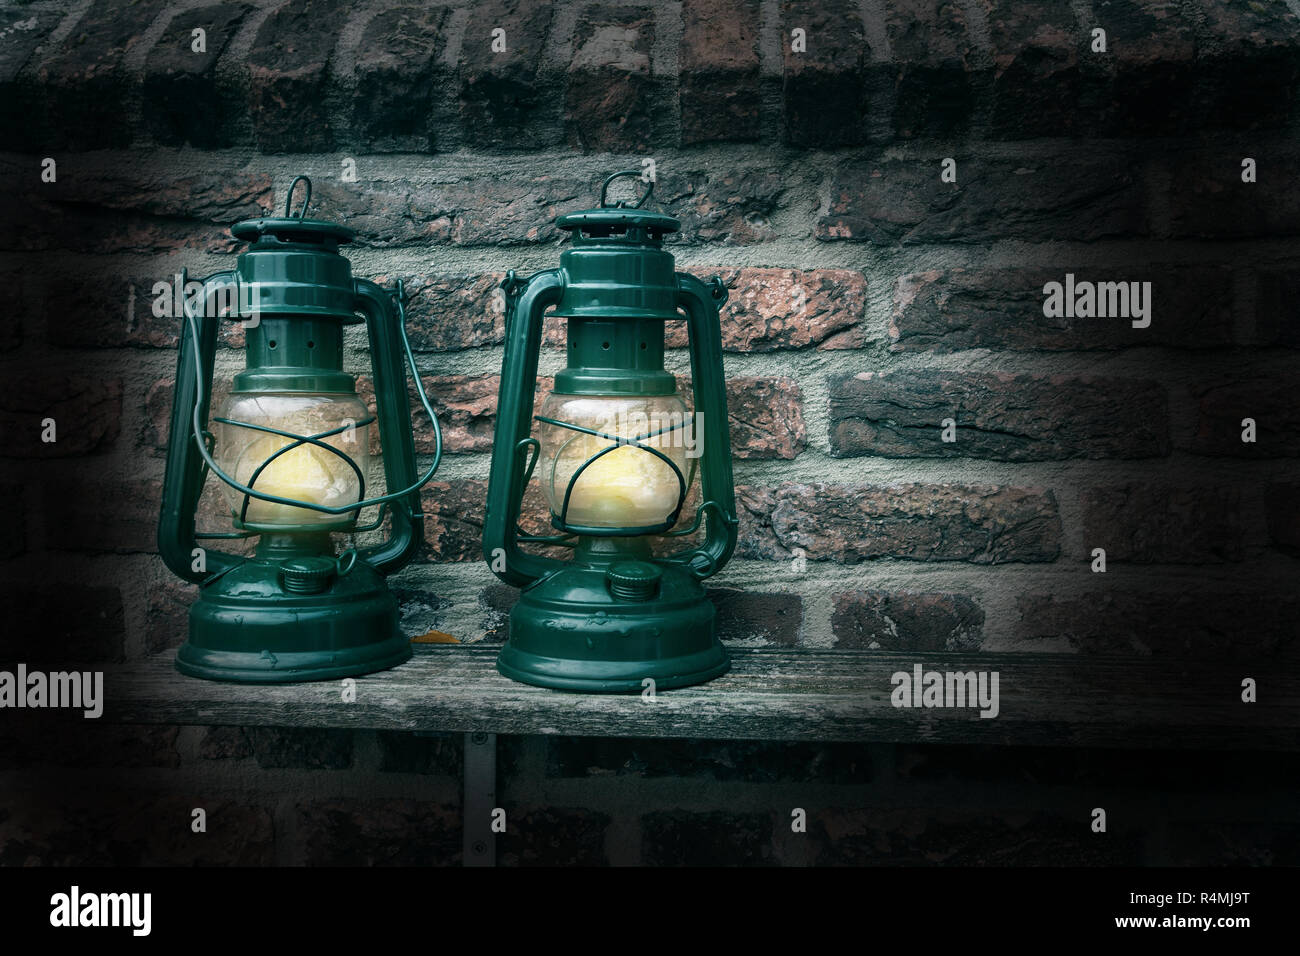 Old antique oil Lamp at Night on a Wooden Surface - Stock Image